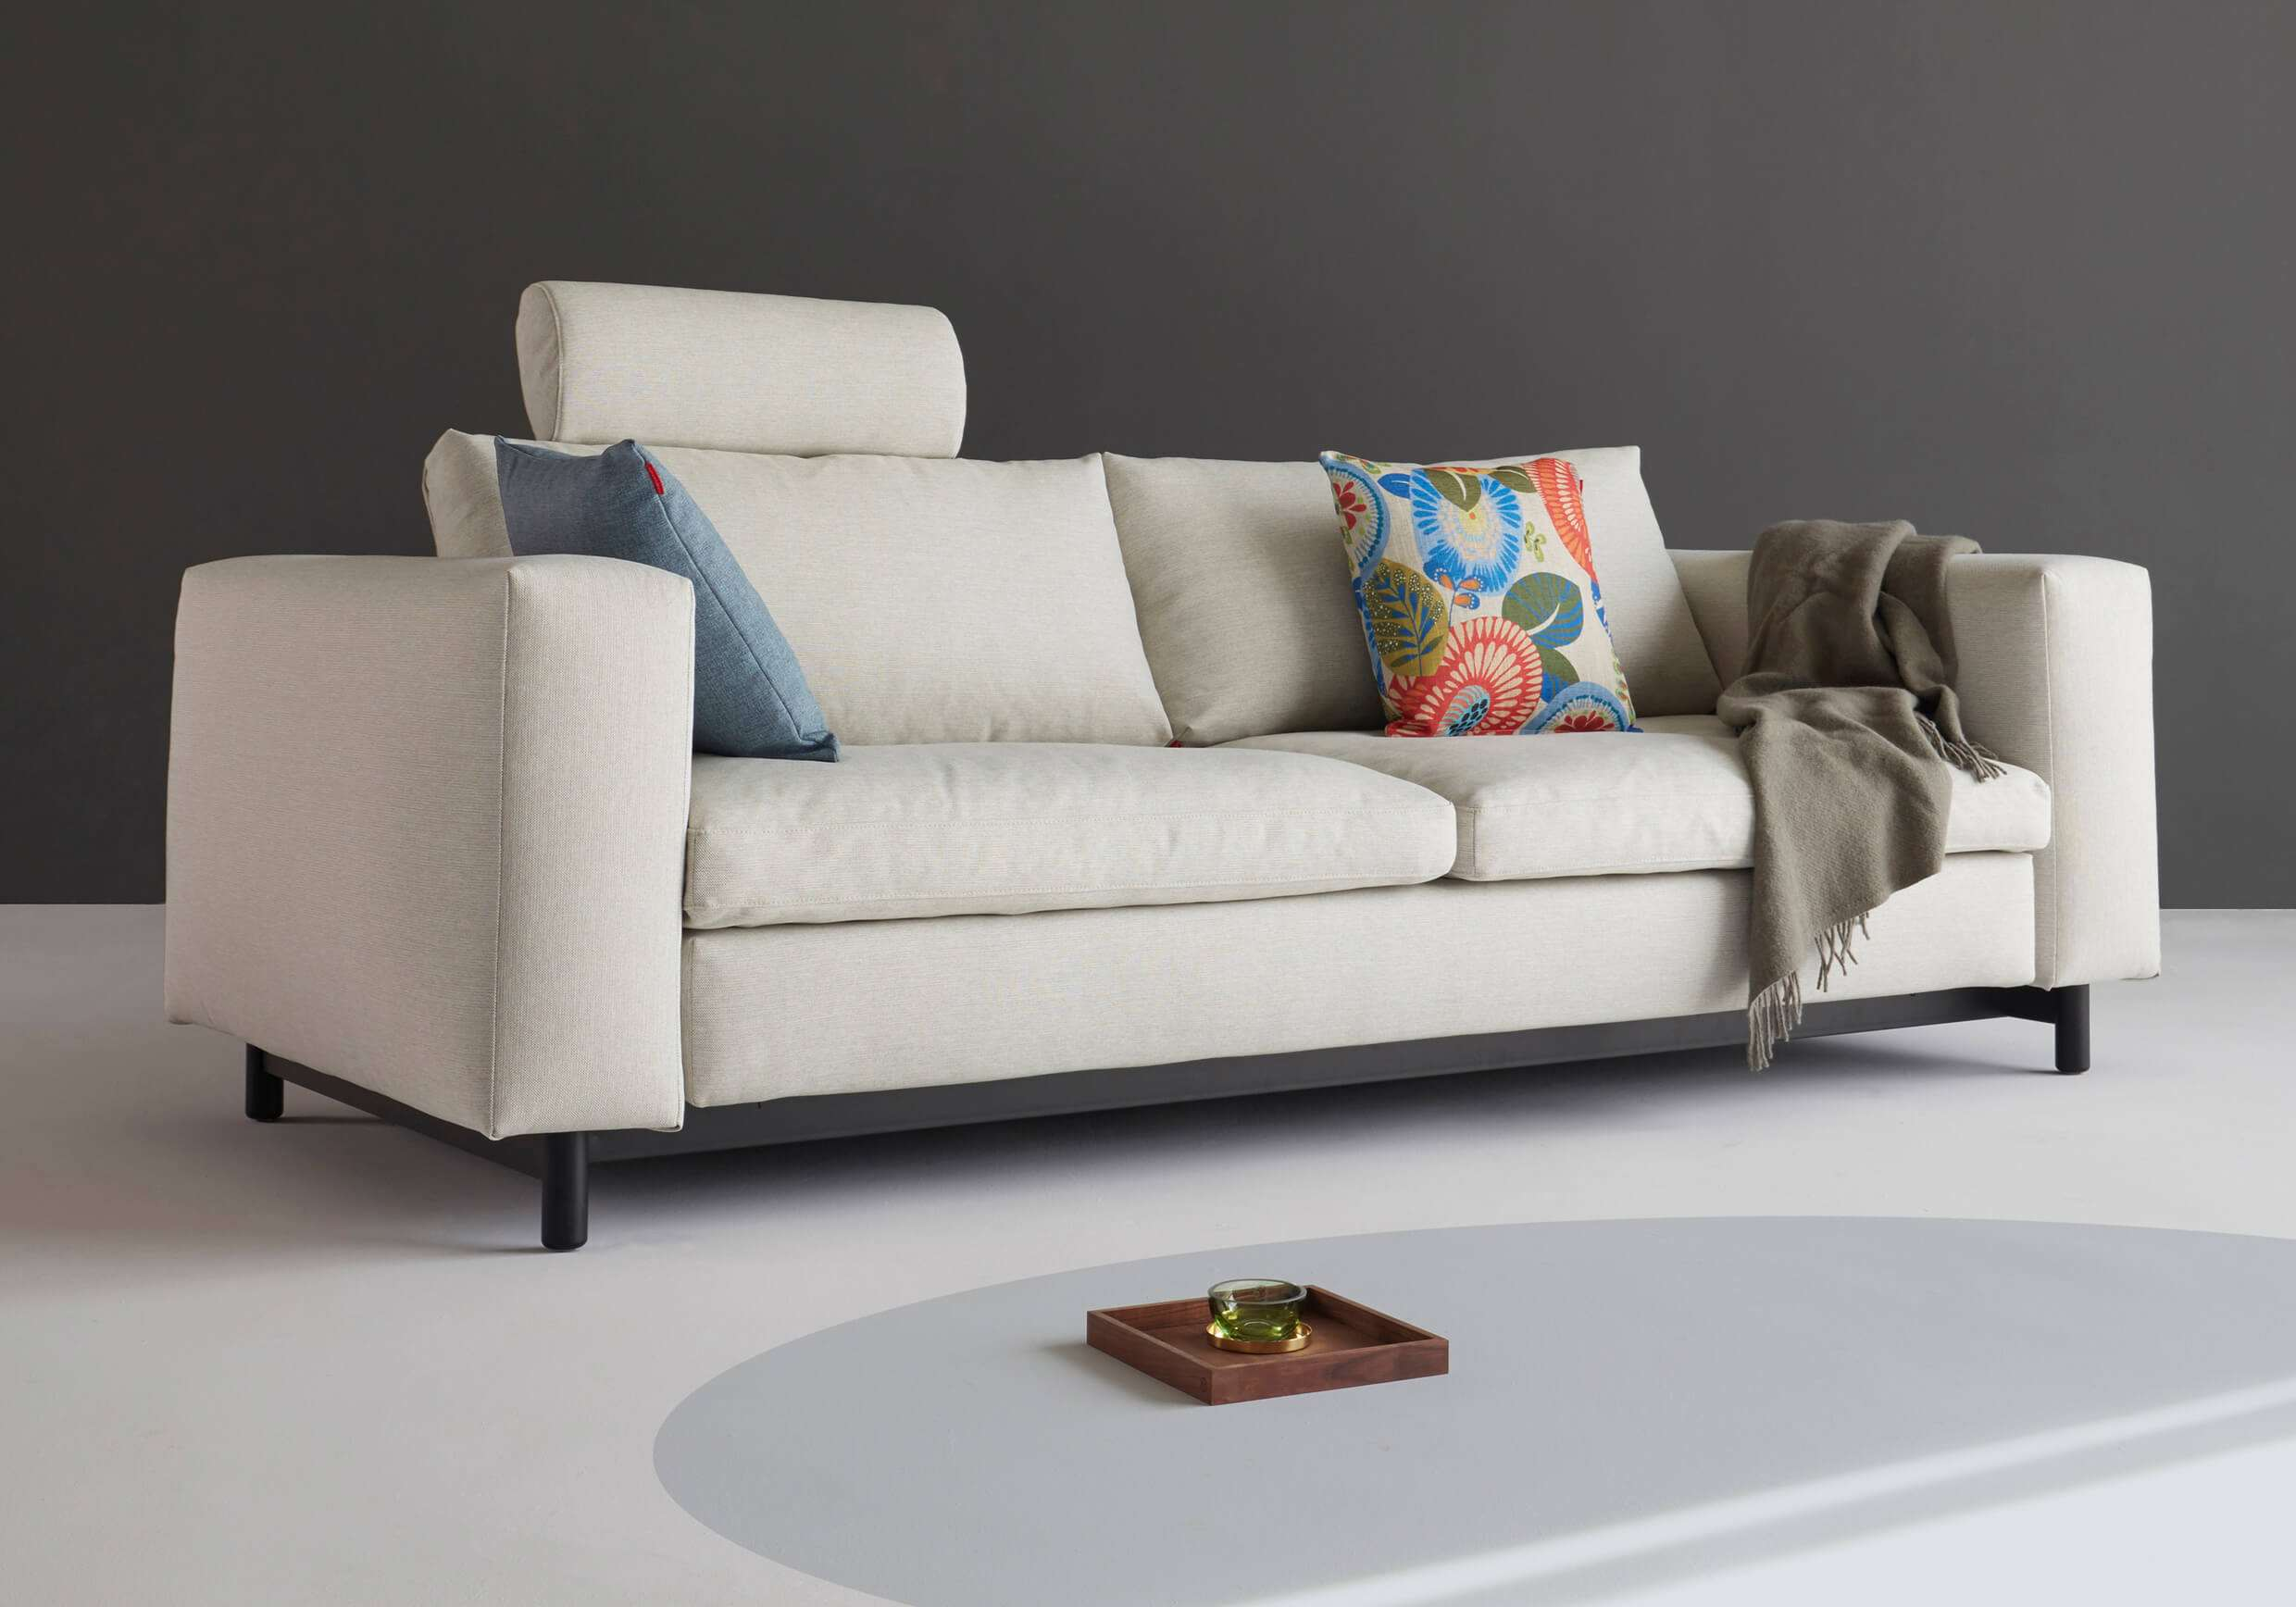 convertible-sofa-bed-trendy-sofa-bed.jpg